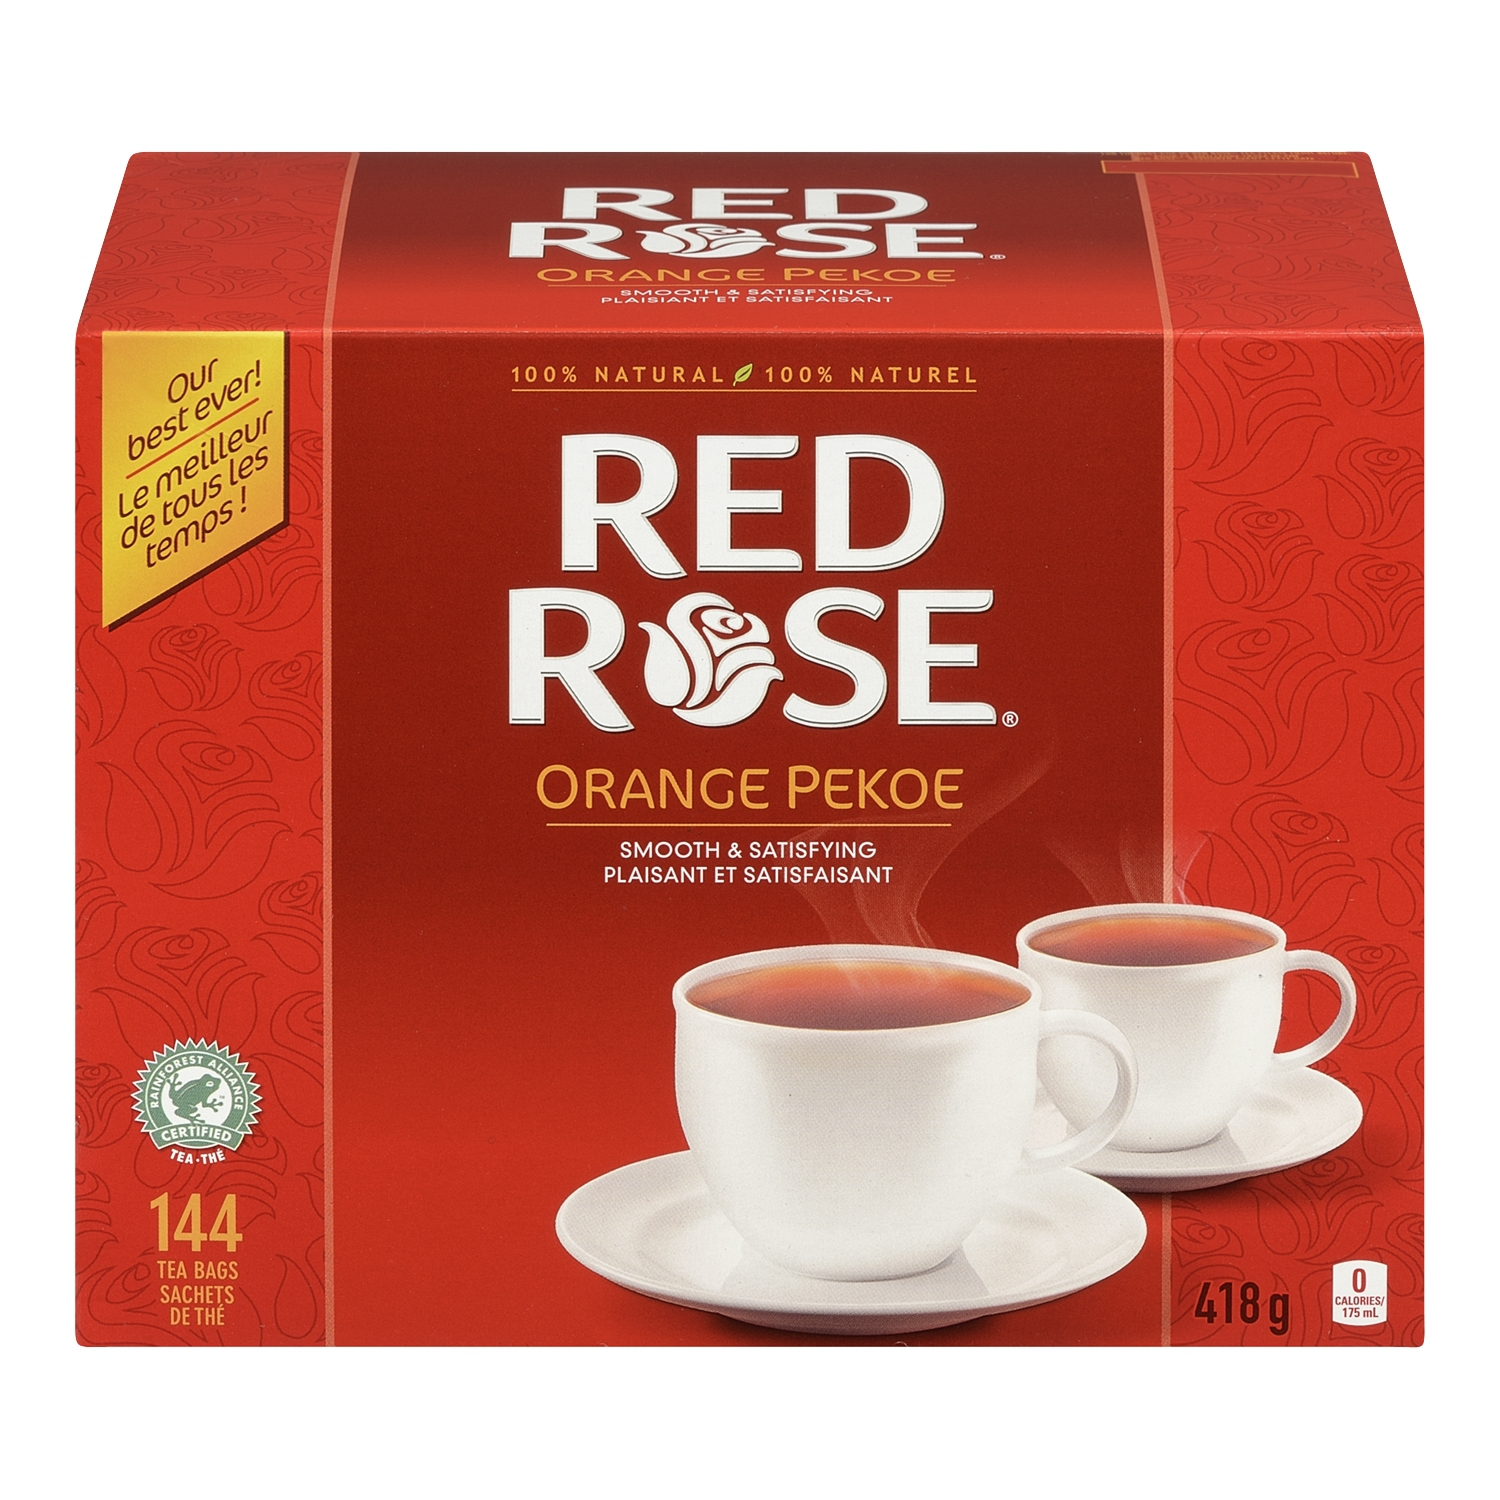 Red rose orange pekoe tea bags reviews in tea chickadvisor for Cuisine rose